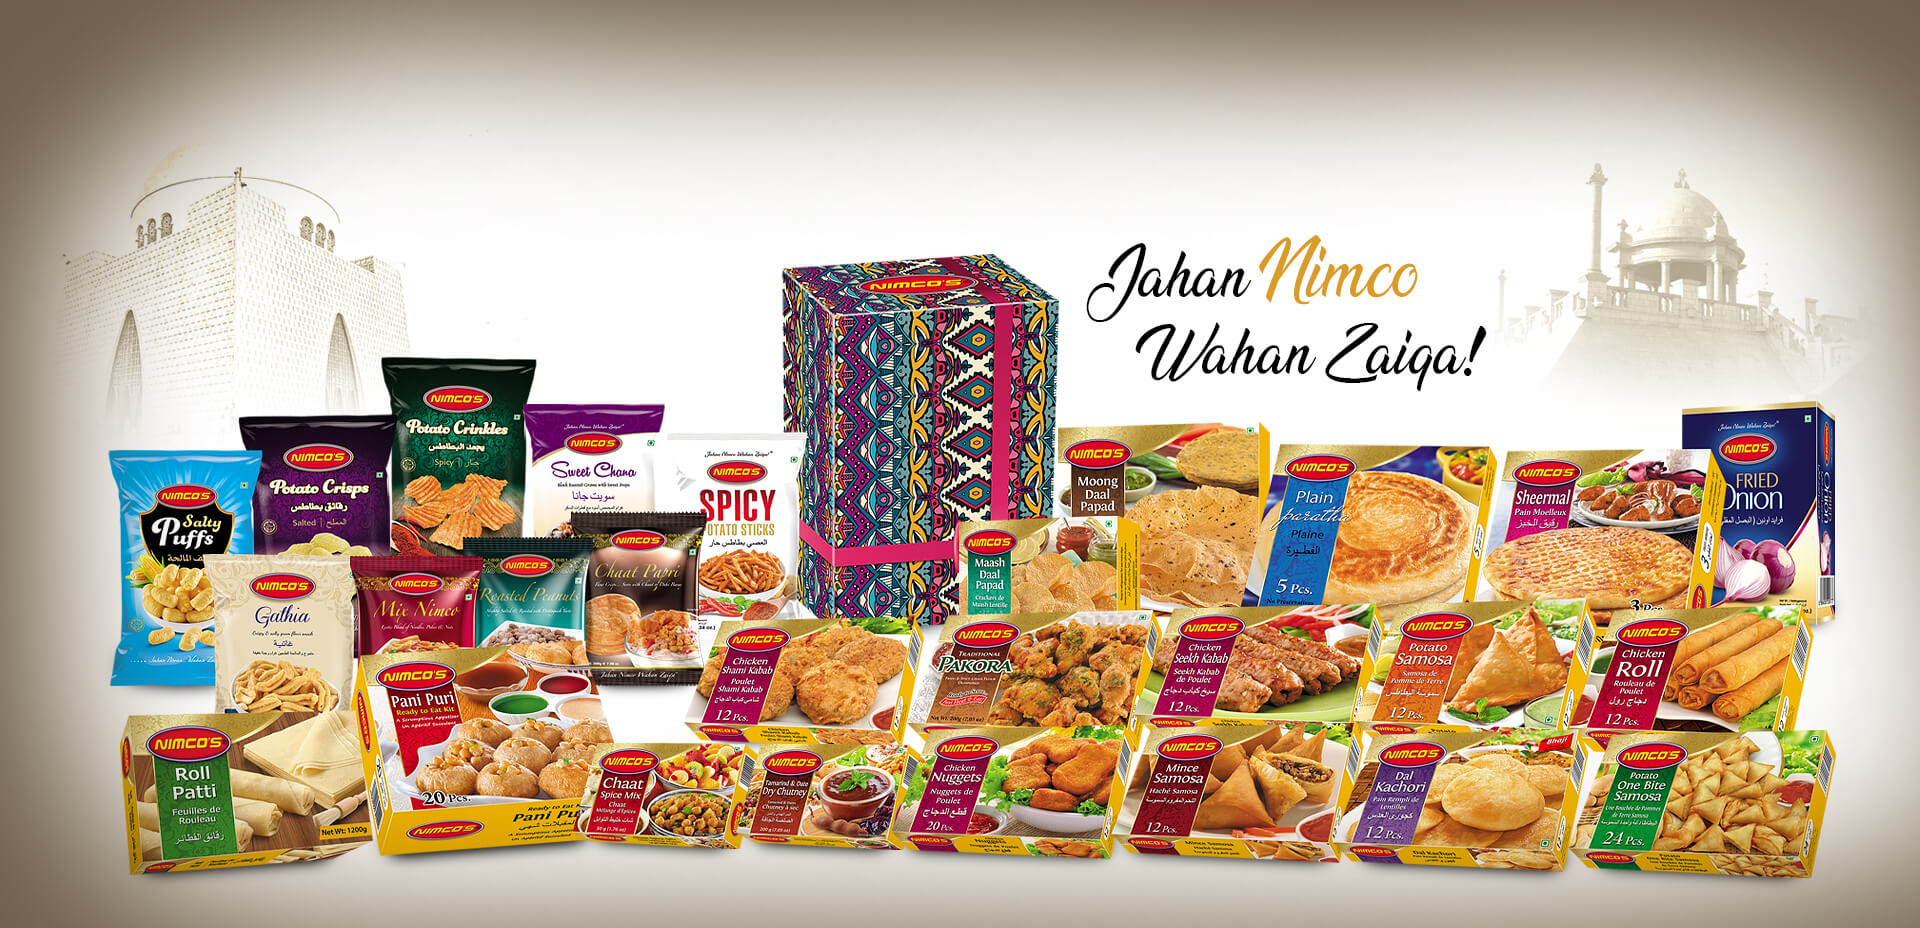 Nimcos - Traditional Pakistani Foods, Snacks & Nuts  Buy